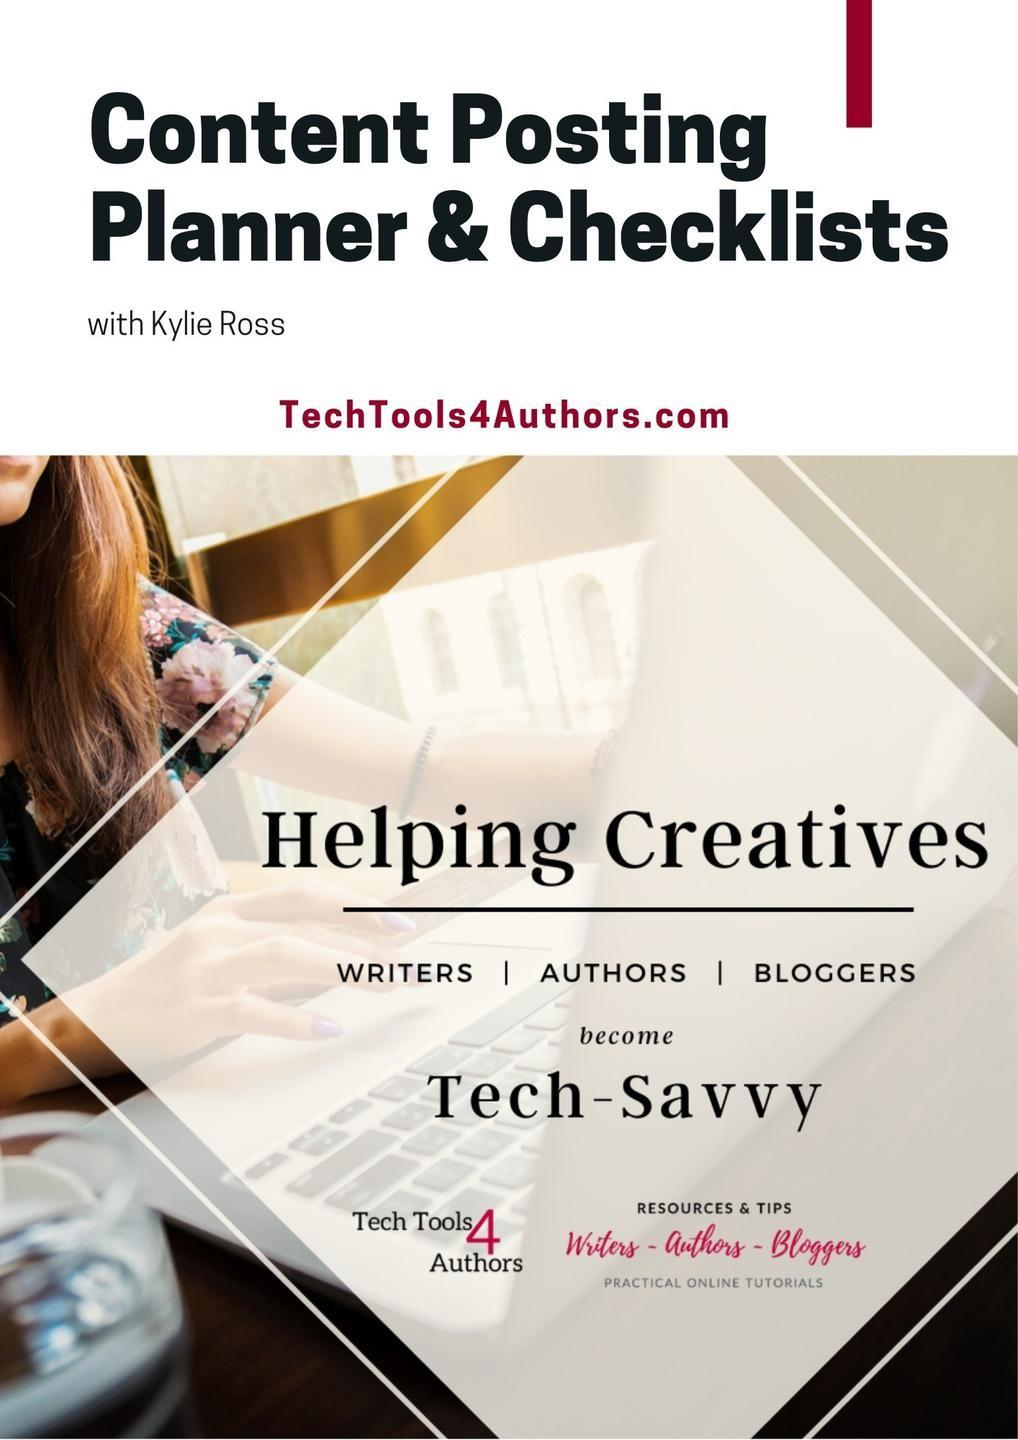 Content Posting Planner & Checklists